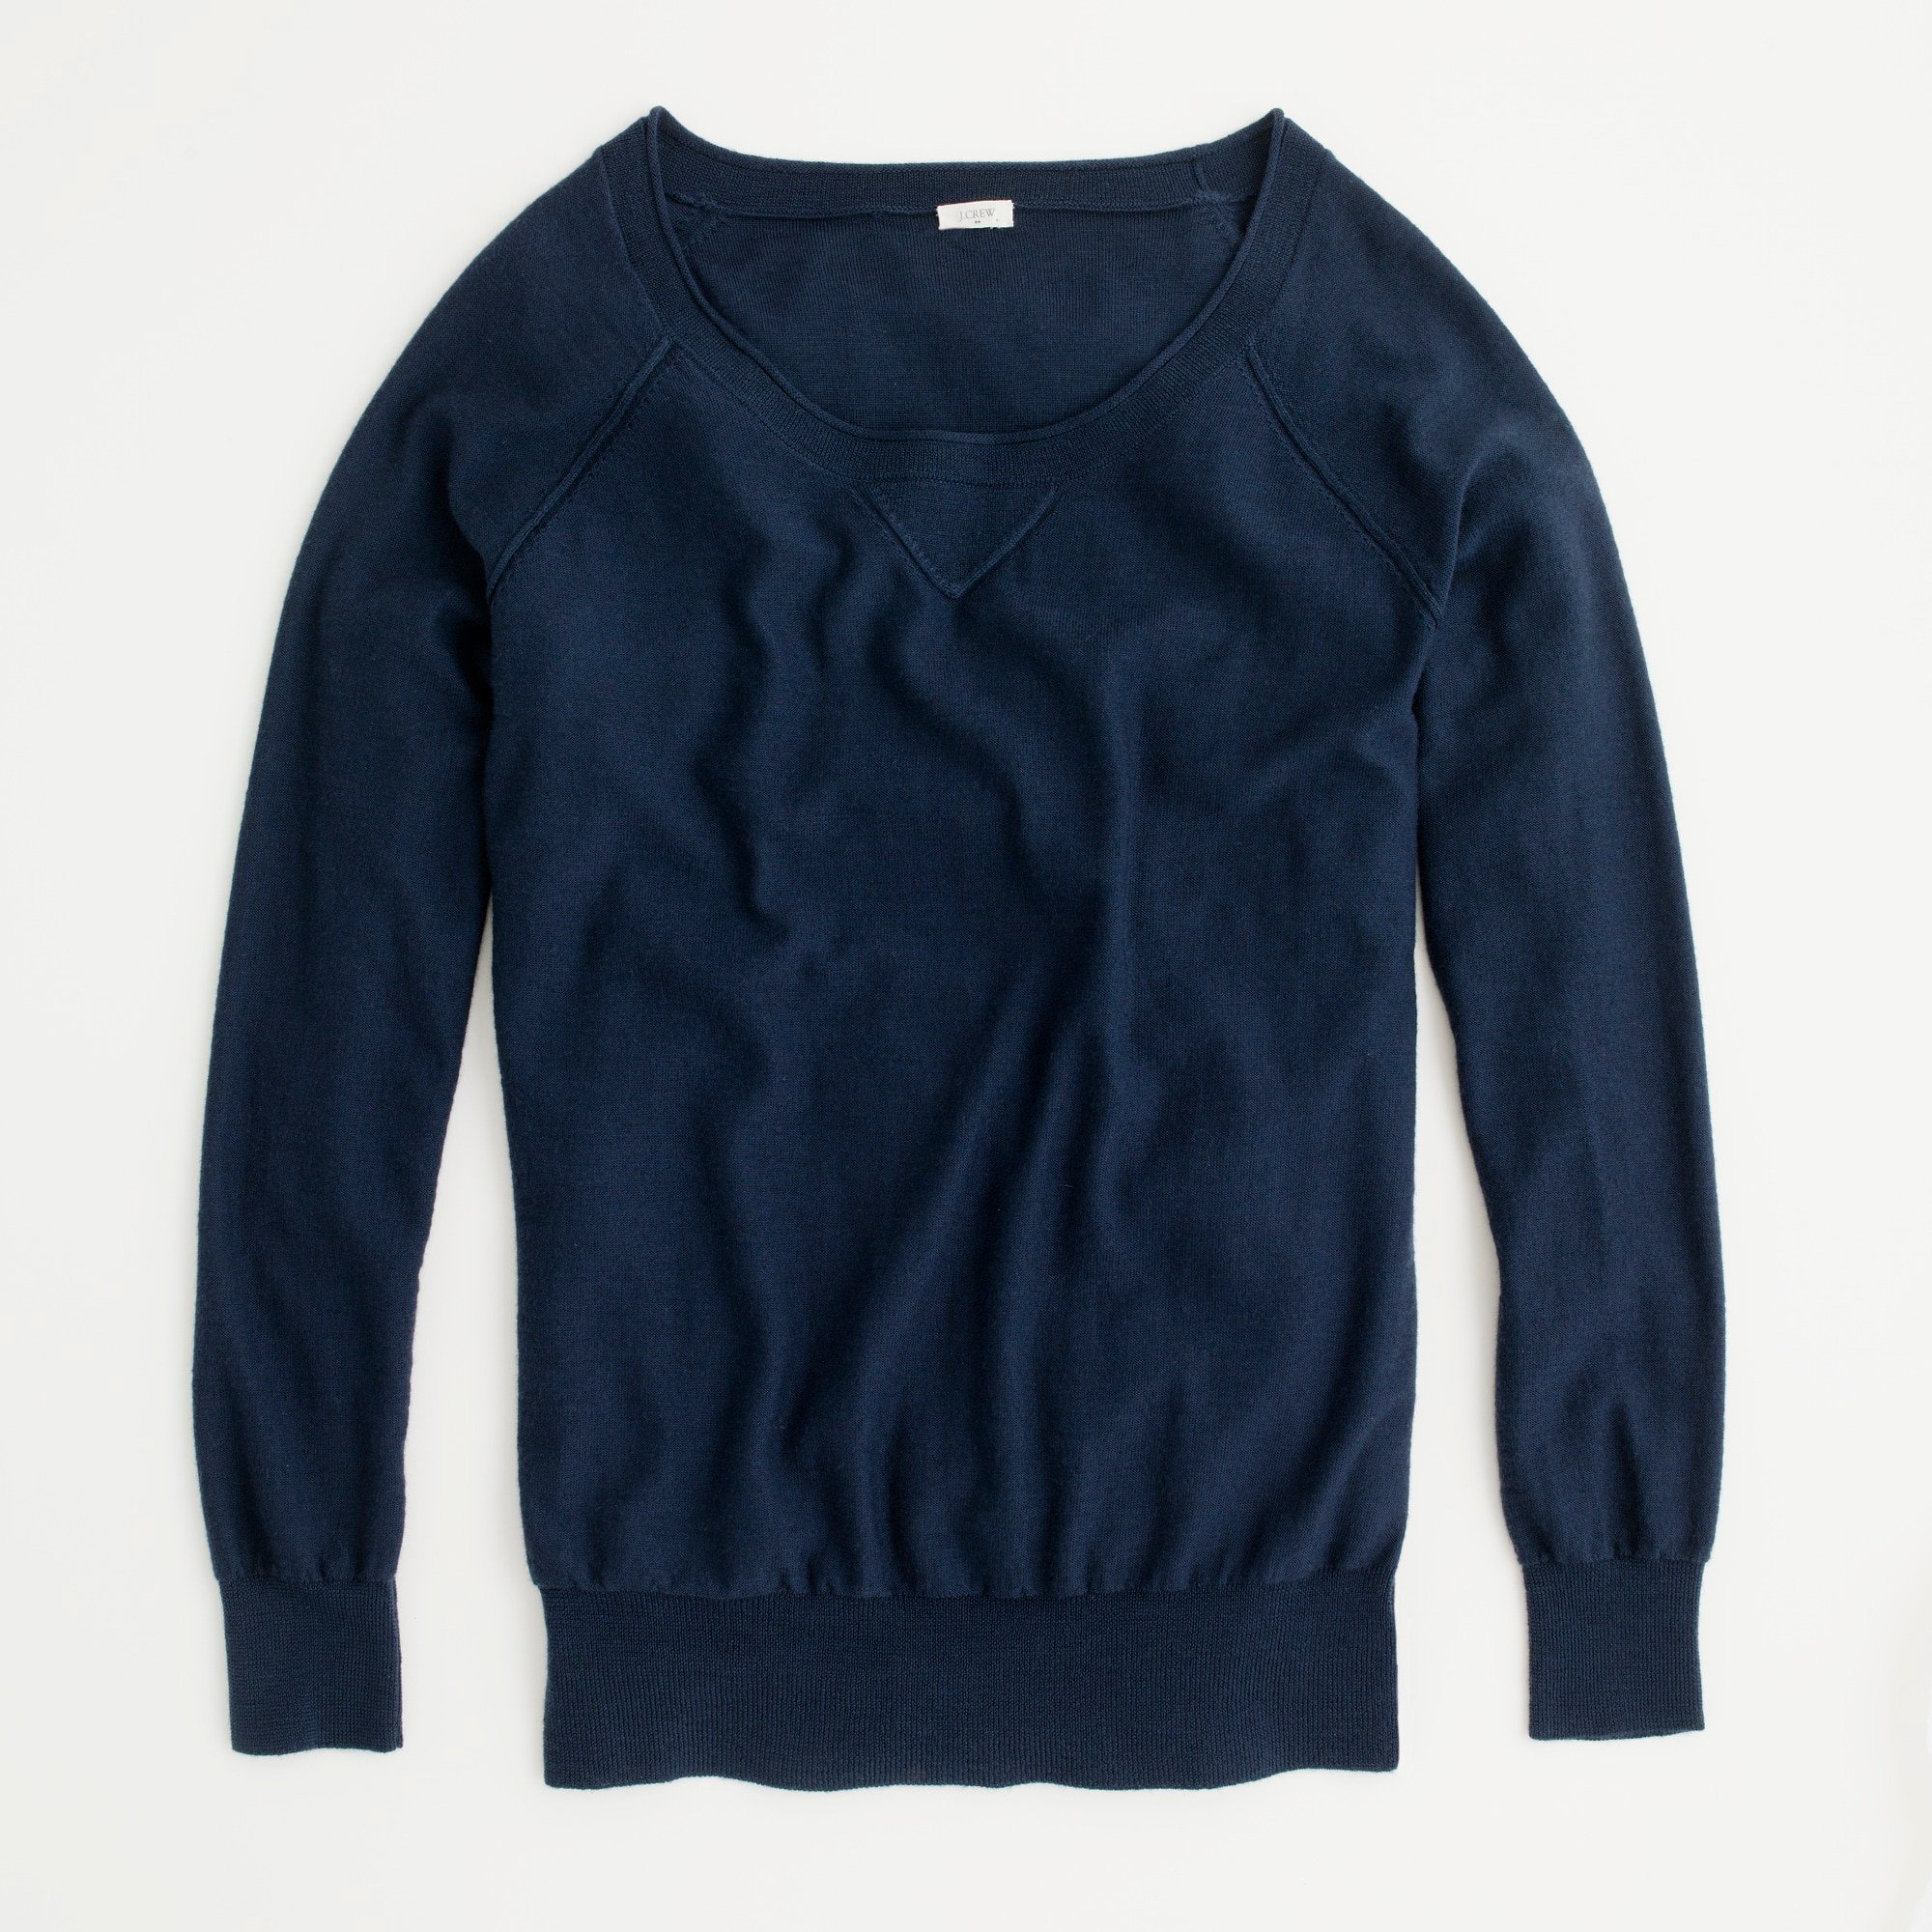 Image 1 for Factory merino boyfriend sweatshirt